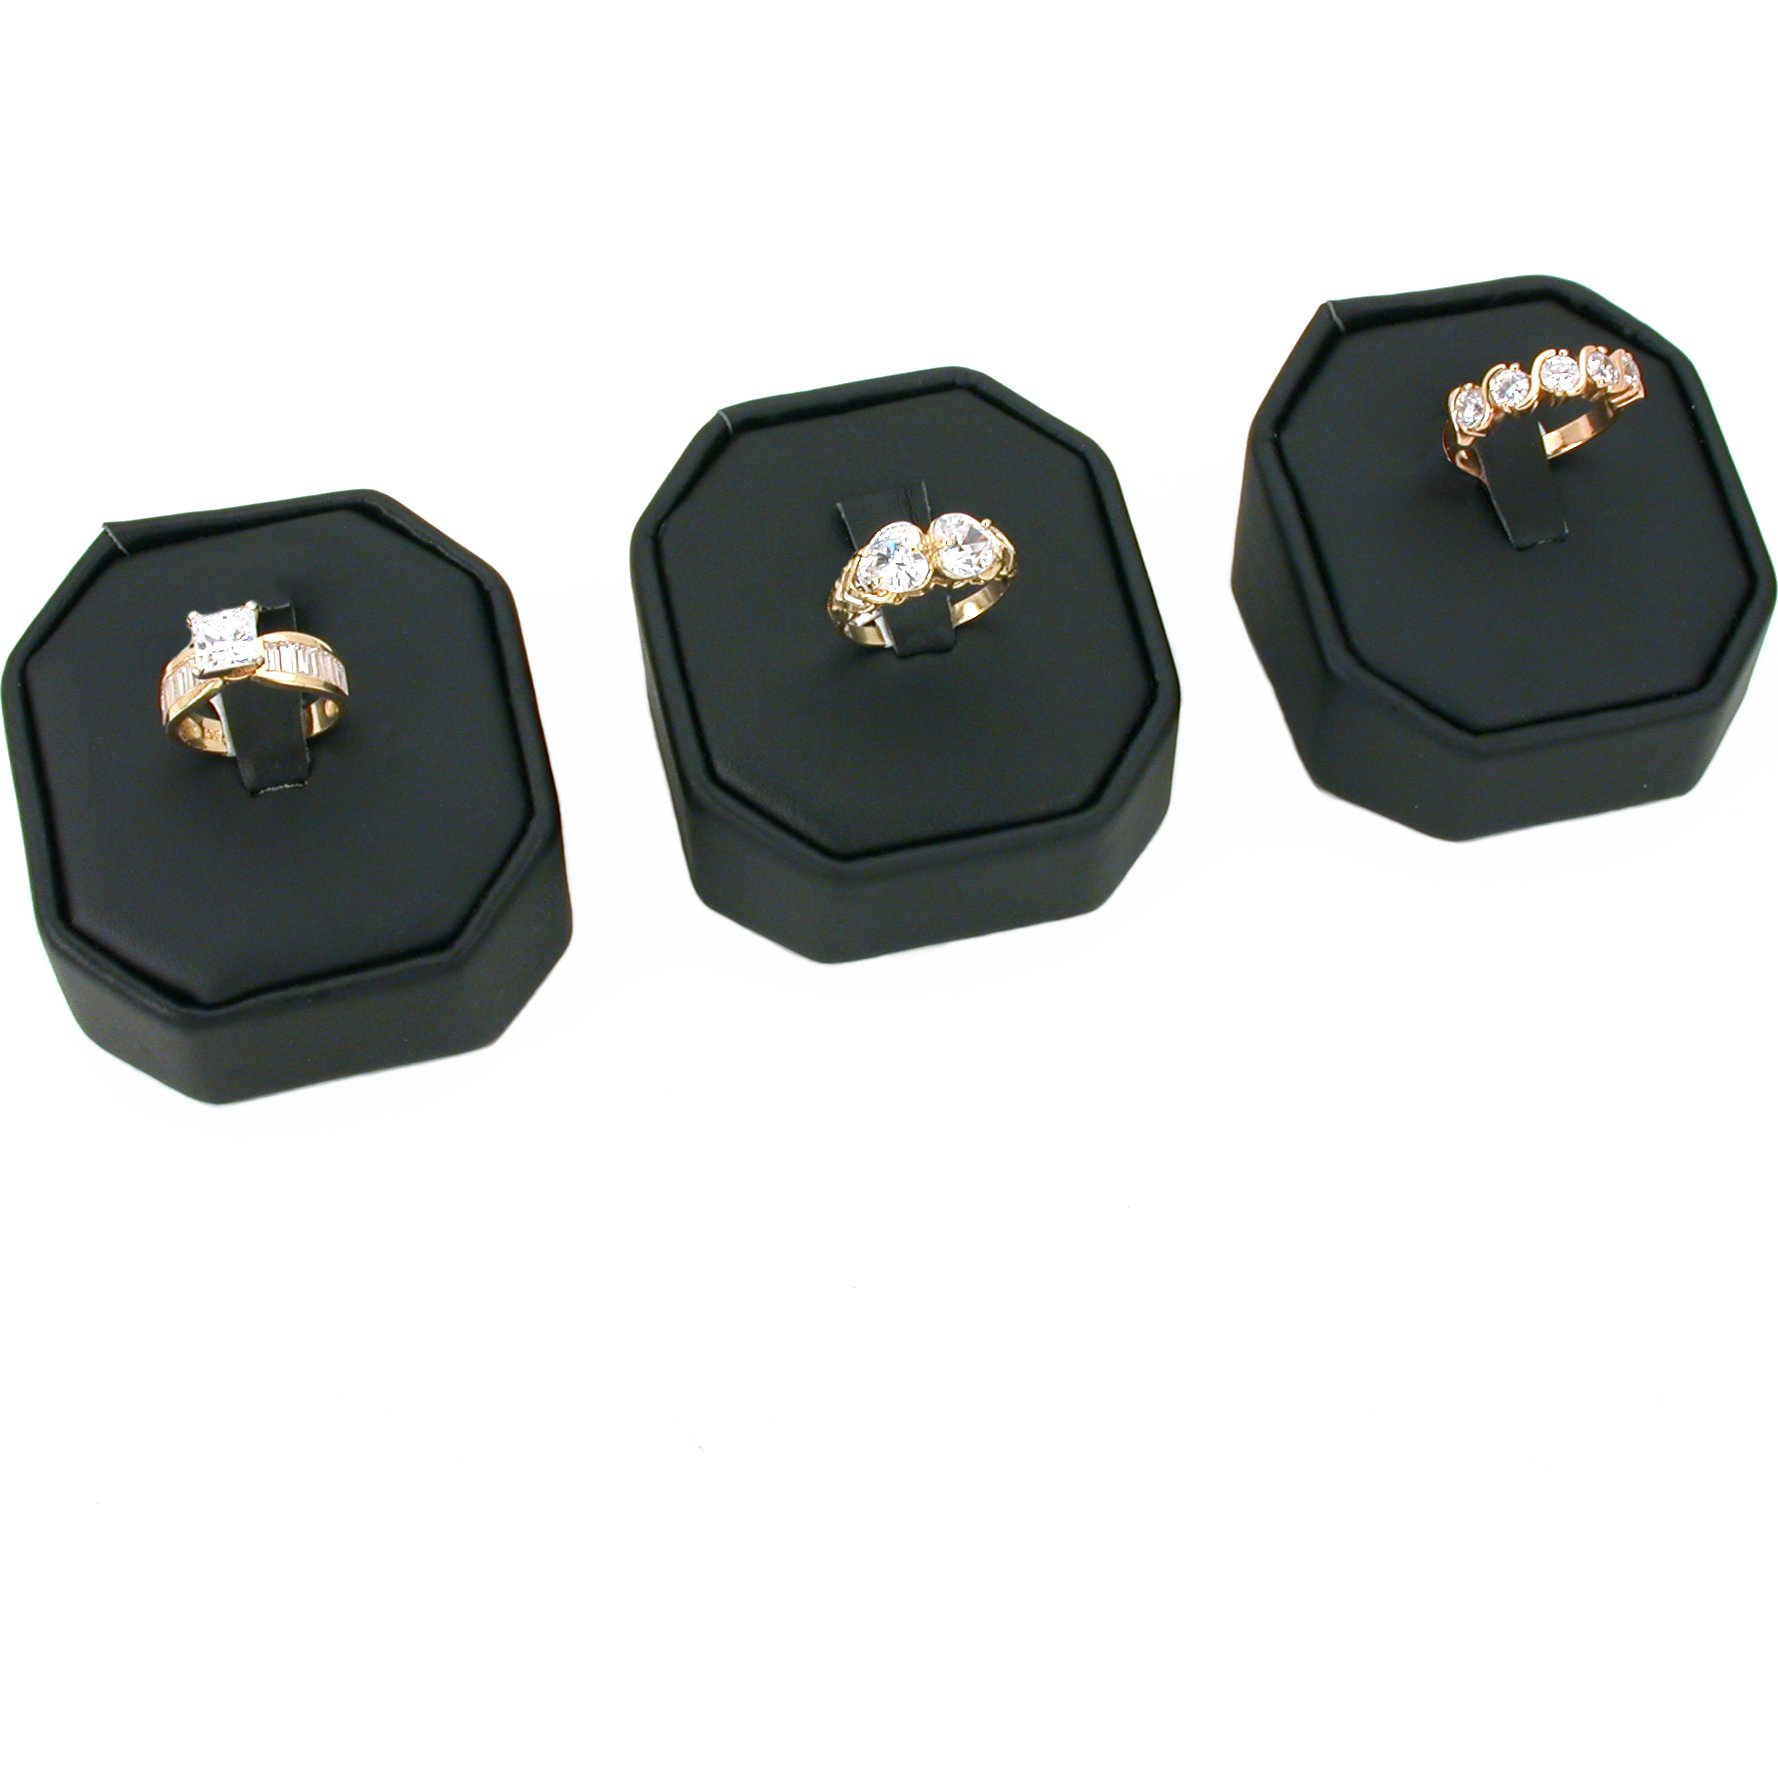 3 Black Velvet Clip Ring Display Stand Jewelry Showcase by